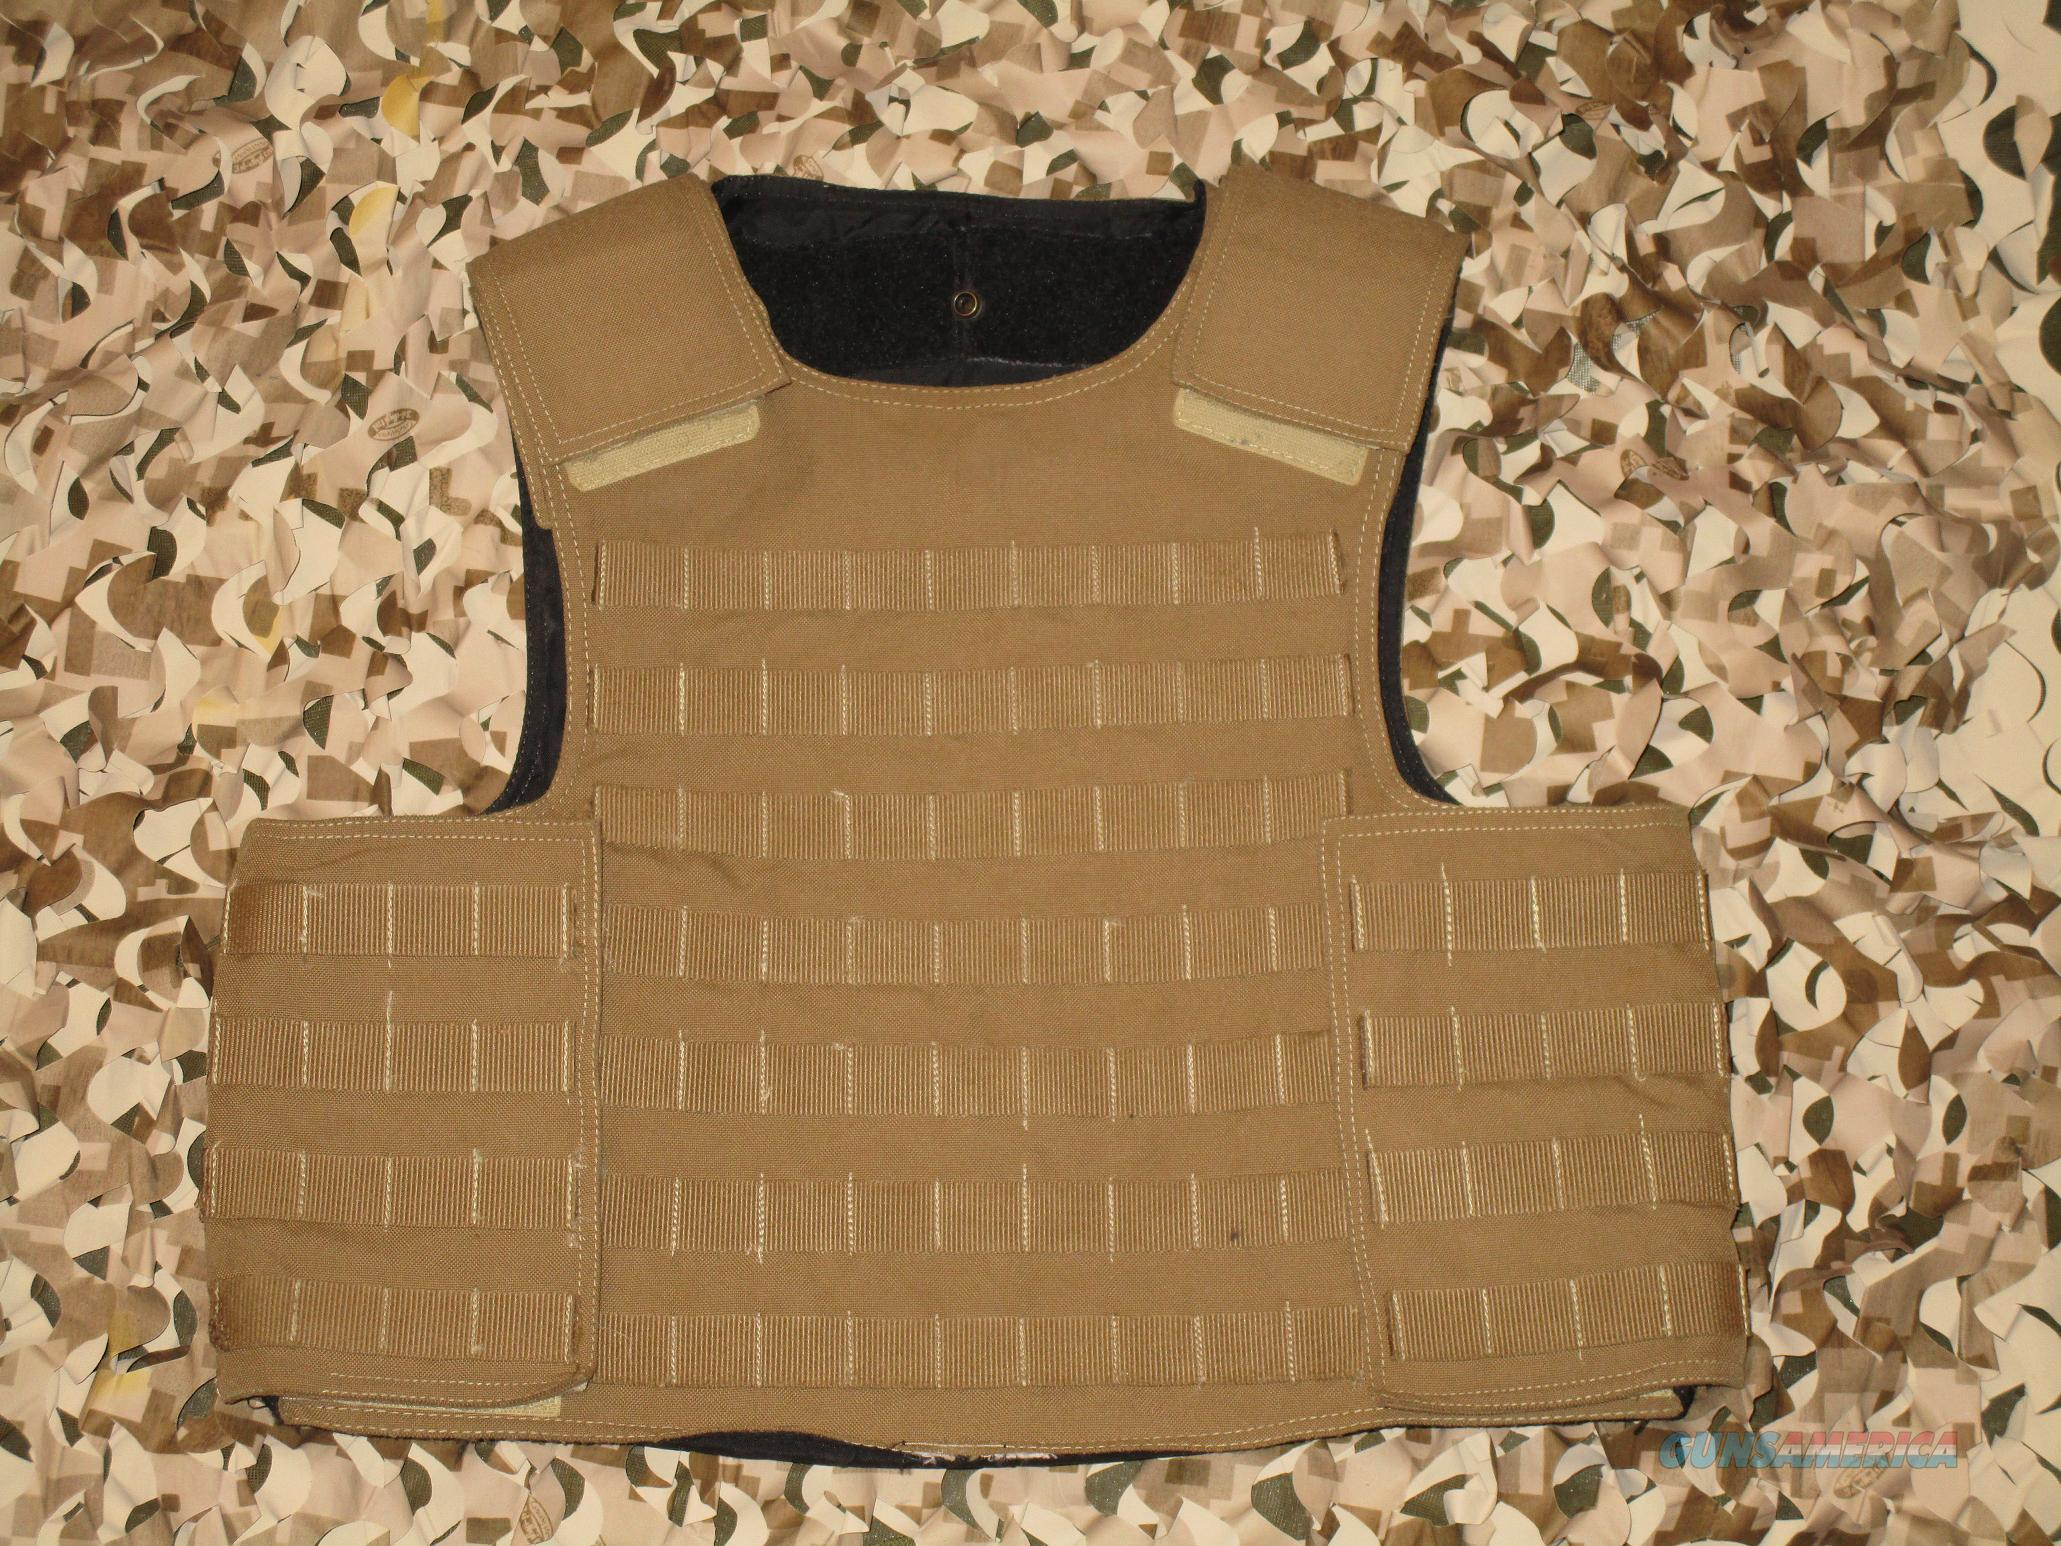 Dragon Skin Lvl Iii Body Armor Pinnacle For Sale Design inspired by the popular television series, vikings. dragon skin lvl iii body armor pinnacle